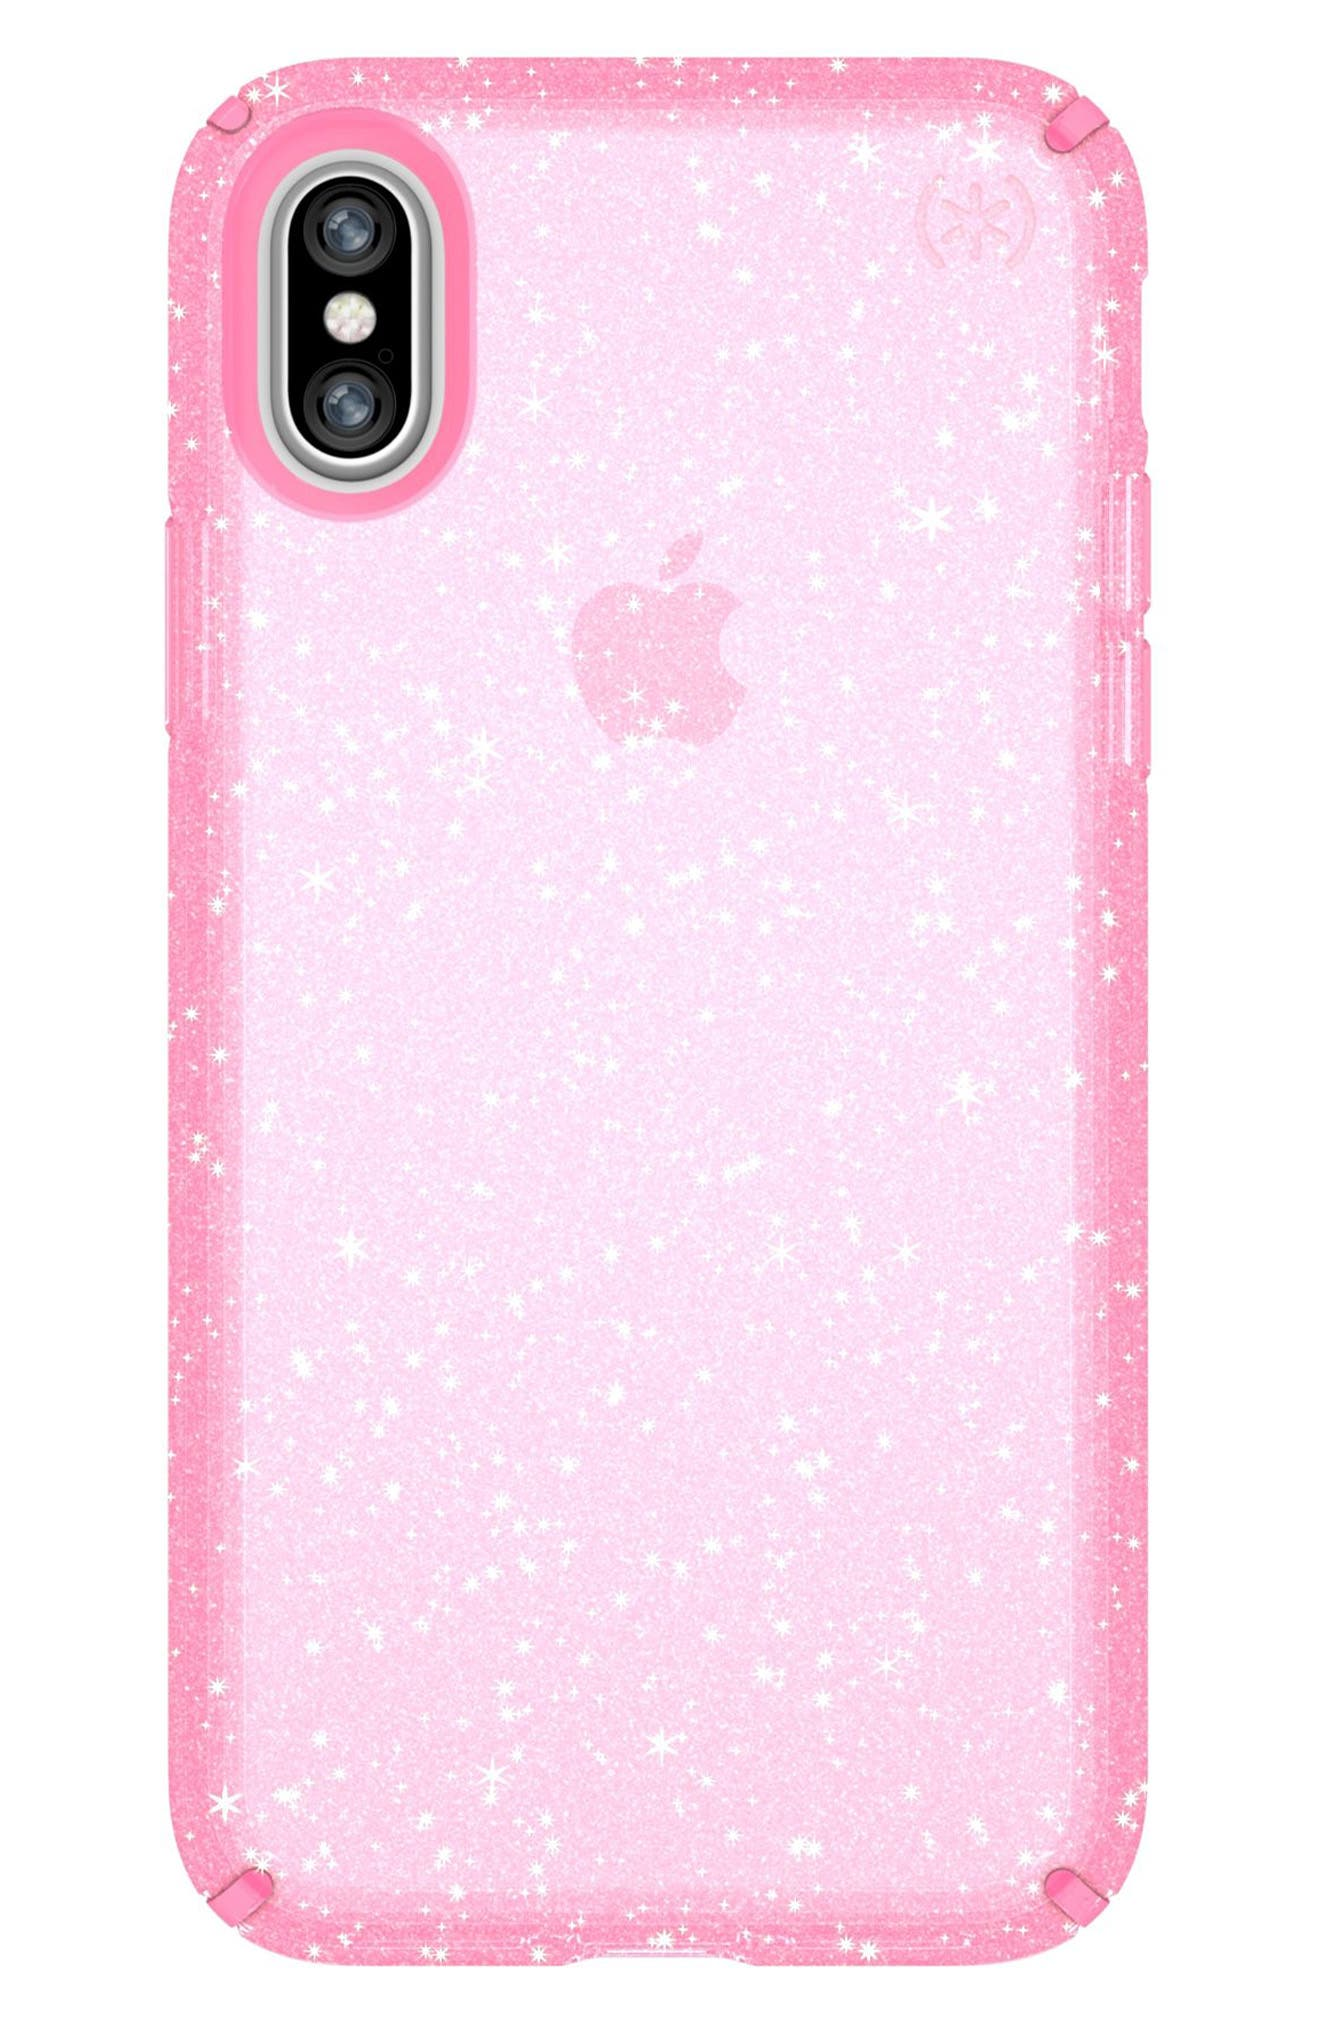 Transparent iPhone X & Xs Case,                             Main thumbnail 1, color,                             BELLA PINK GOLD GLITTER/ PINK